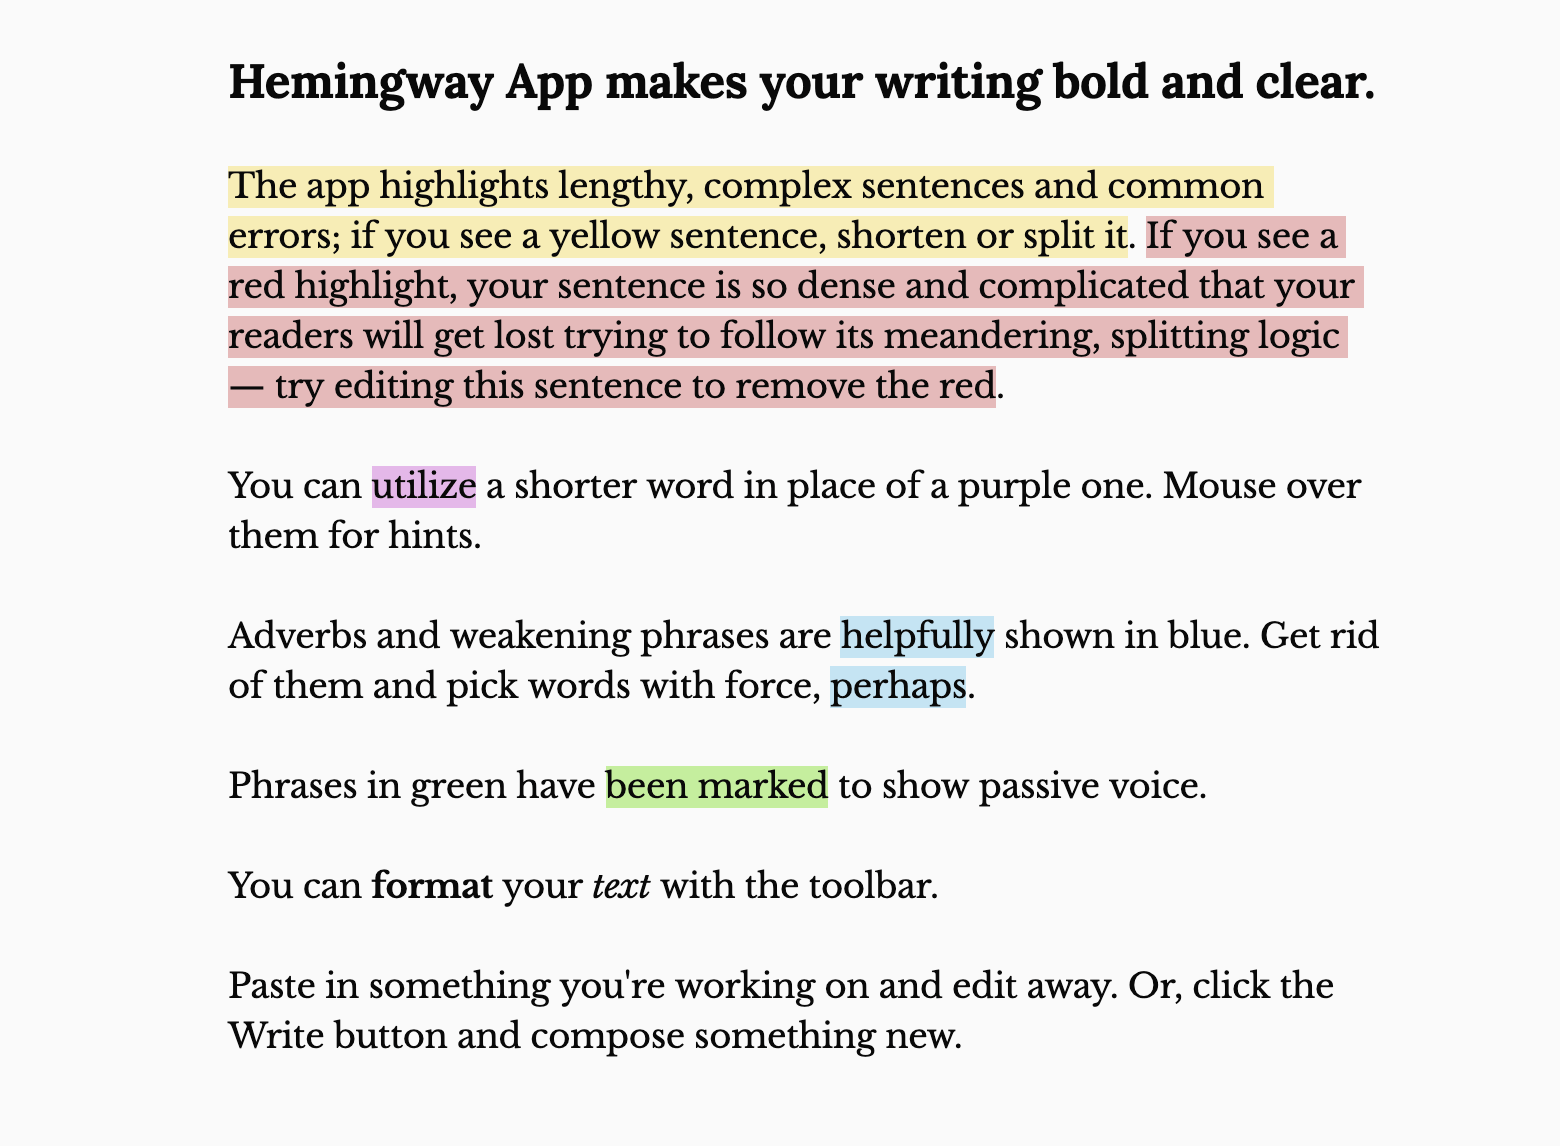 hemingway-editor-review-text-field